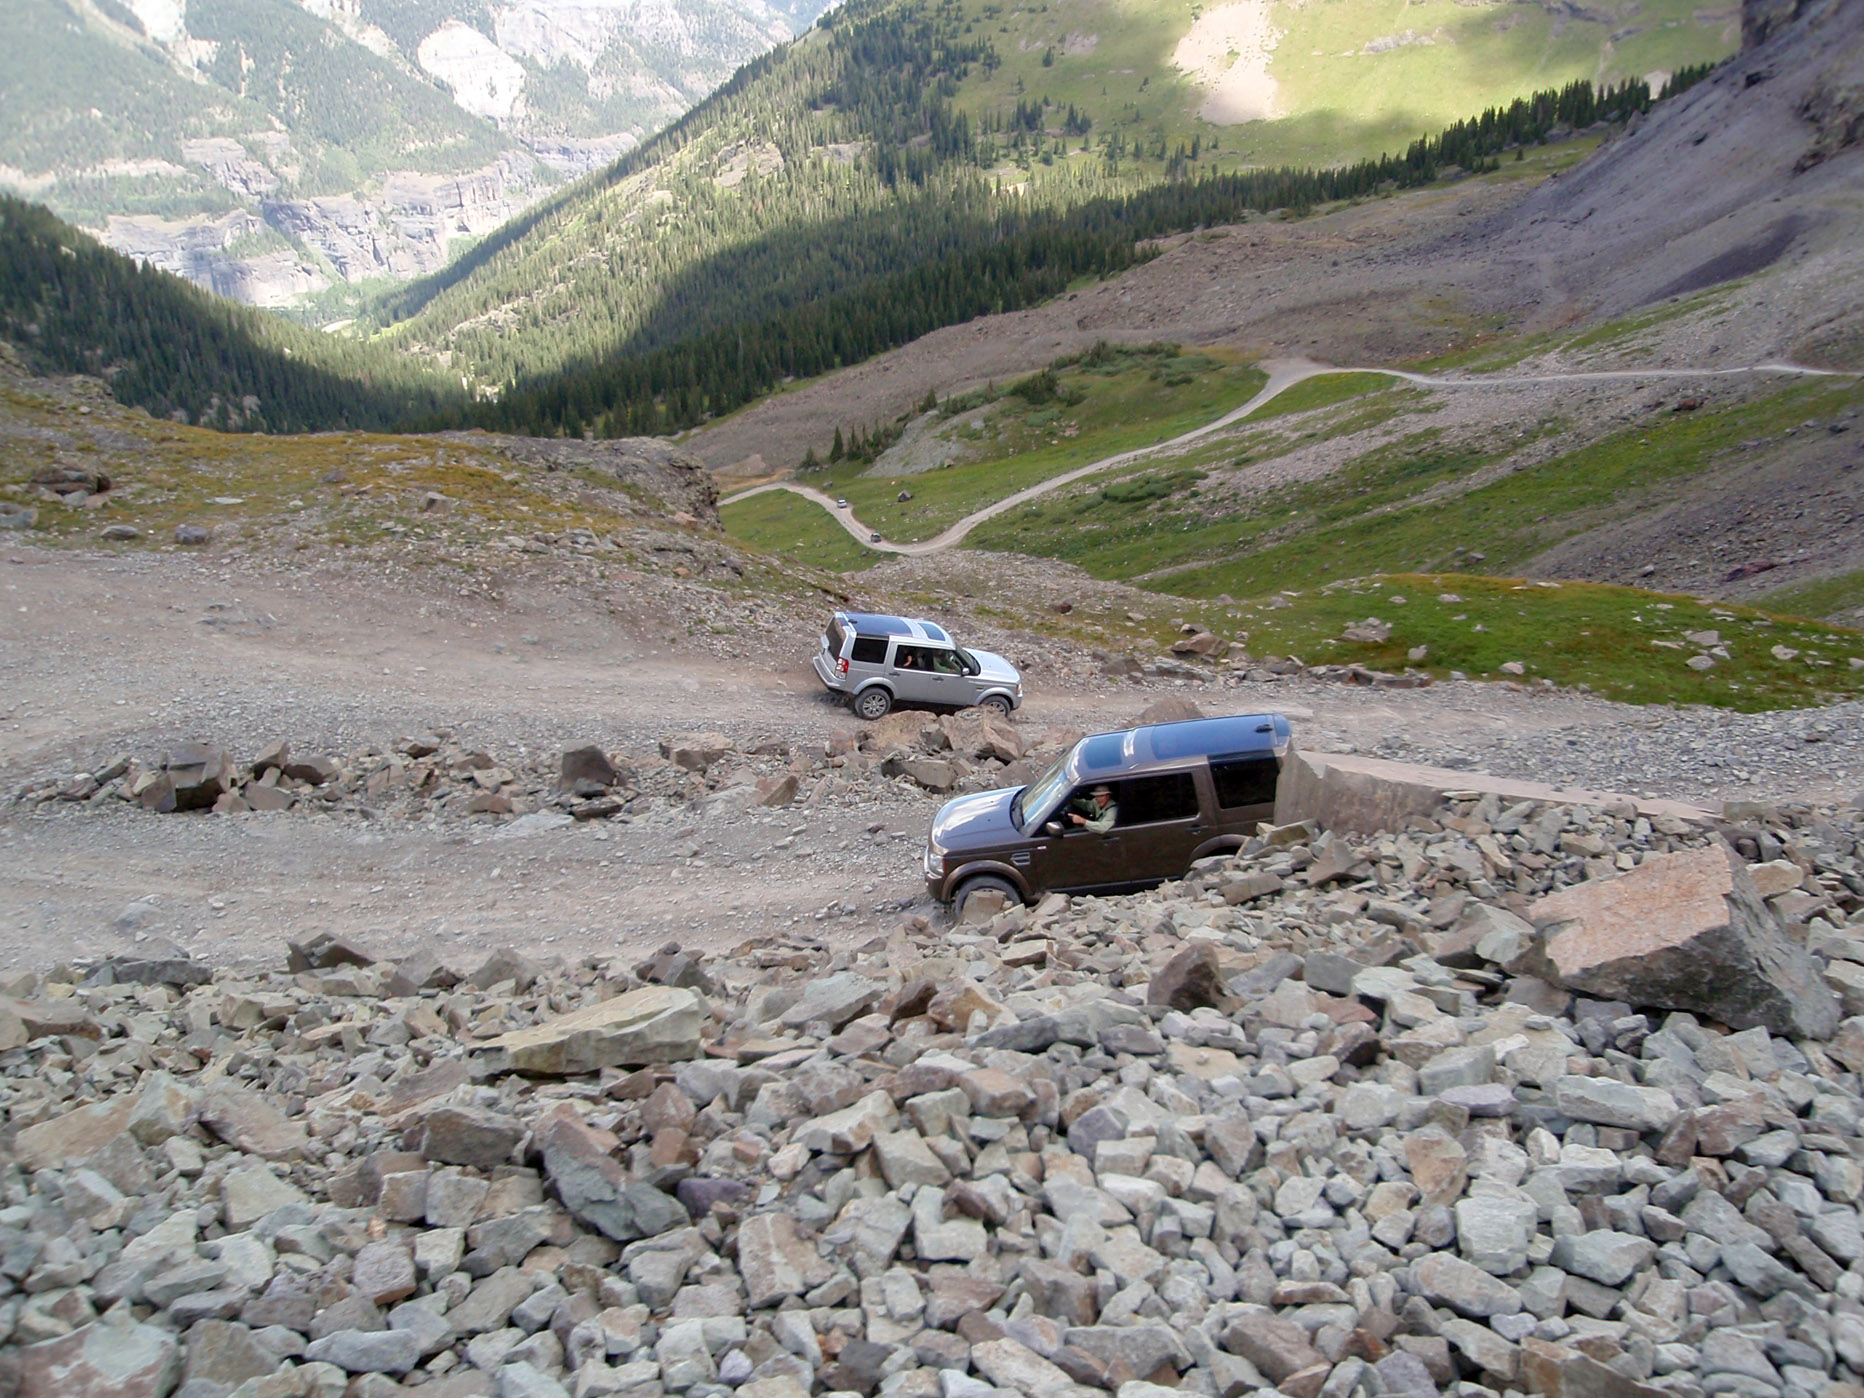 A Colorado Land Rover Adventure – Our Auto Expert